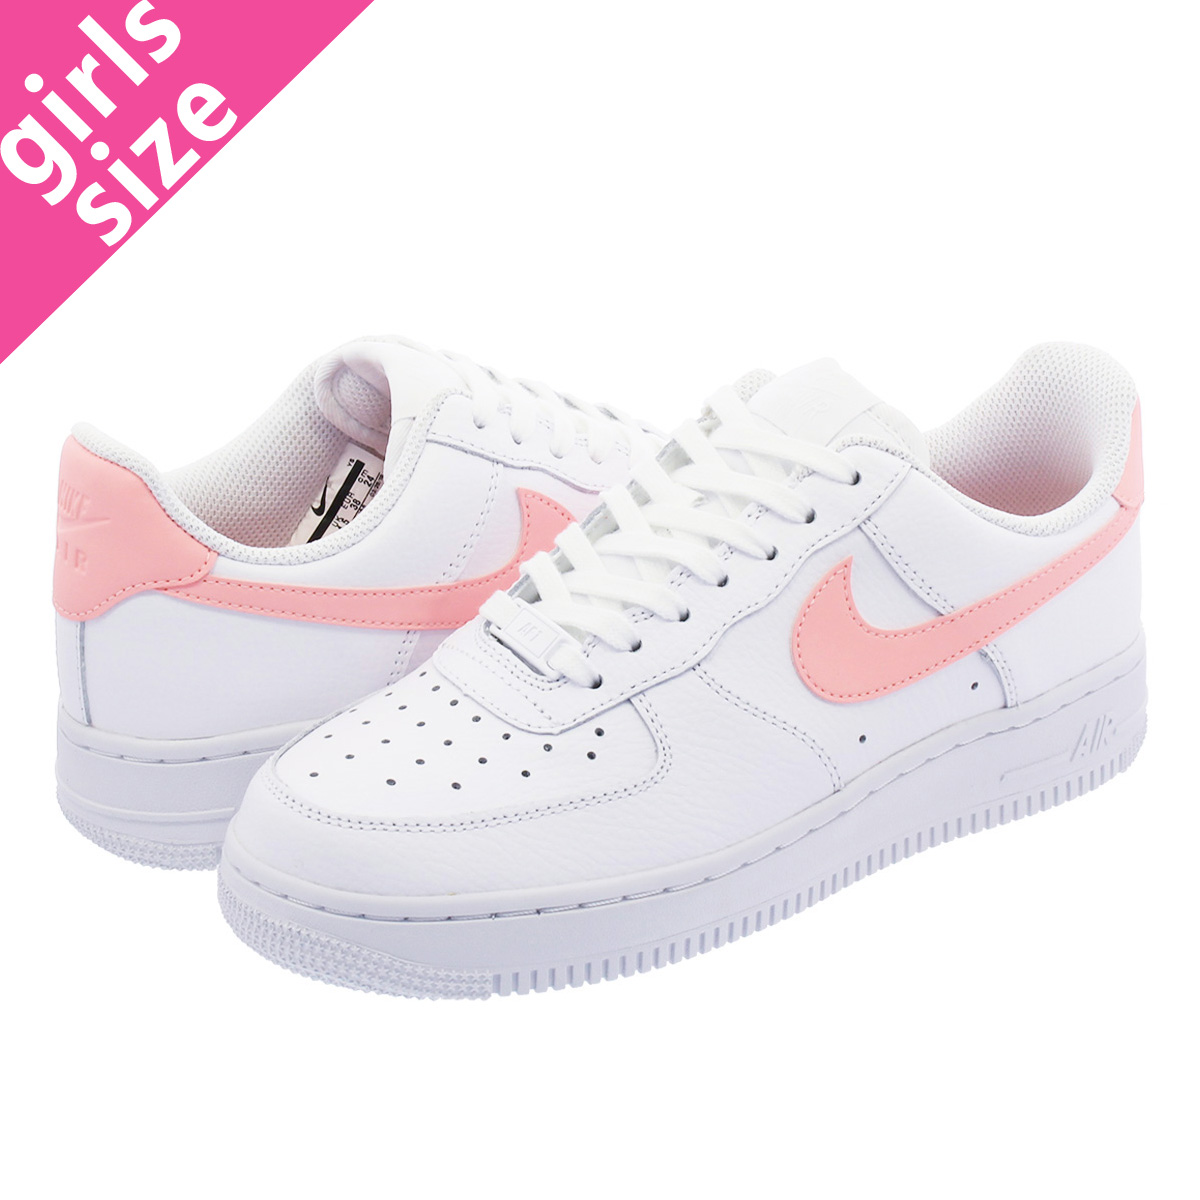 innovative design a5ee3 bb288 NIKE WMNS AIR FORCE 1 07 Nike women air force 1 07 WHITE/ORACLE PINK/WHITE  ah0287-102-l